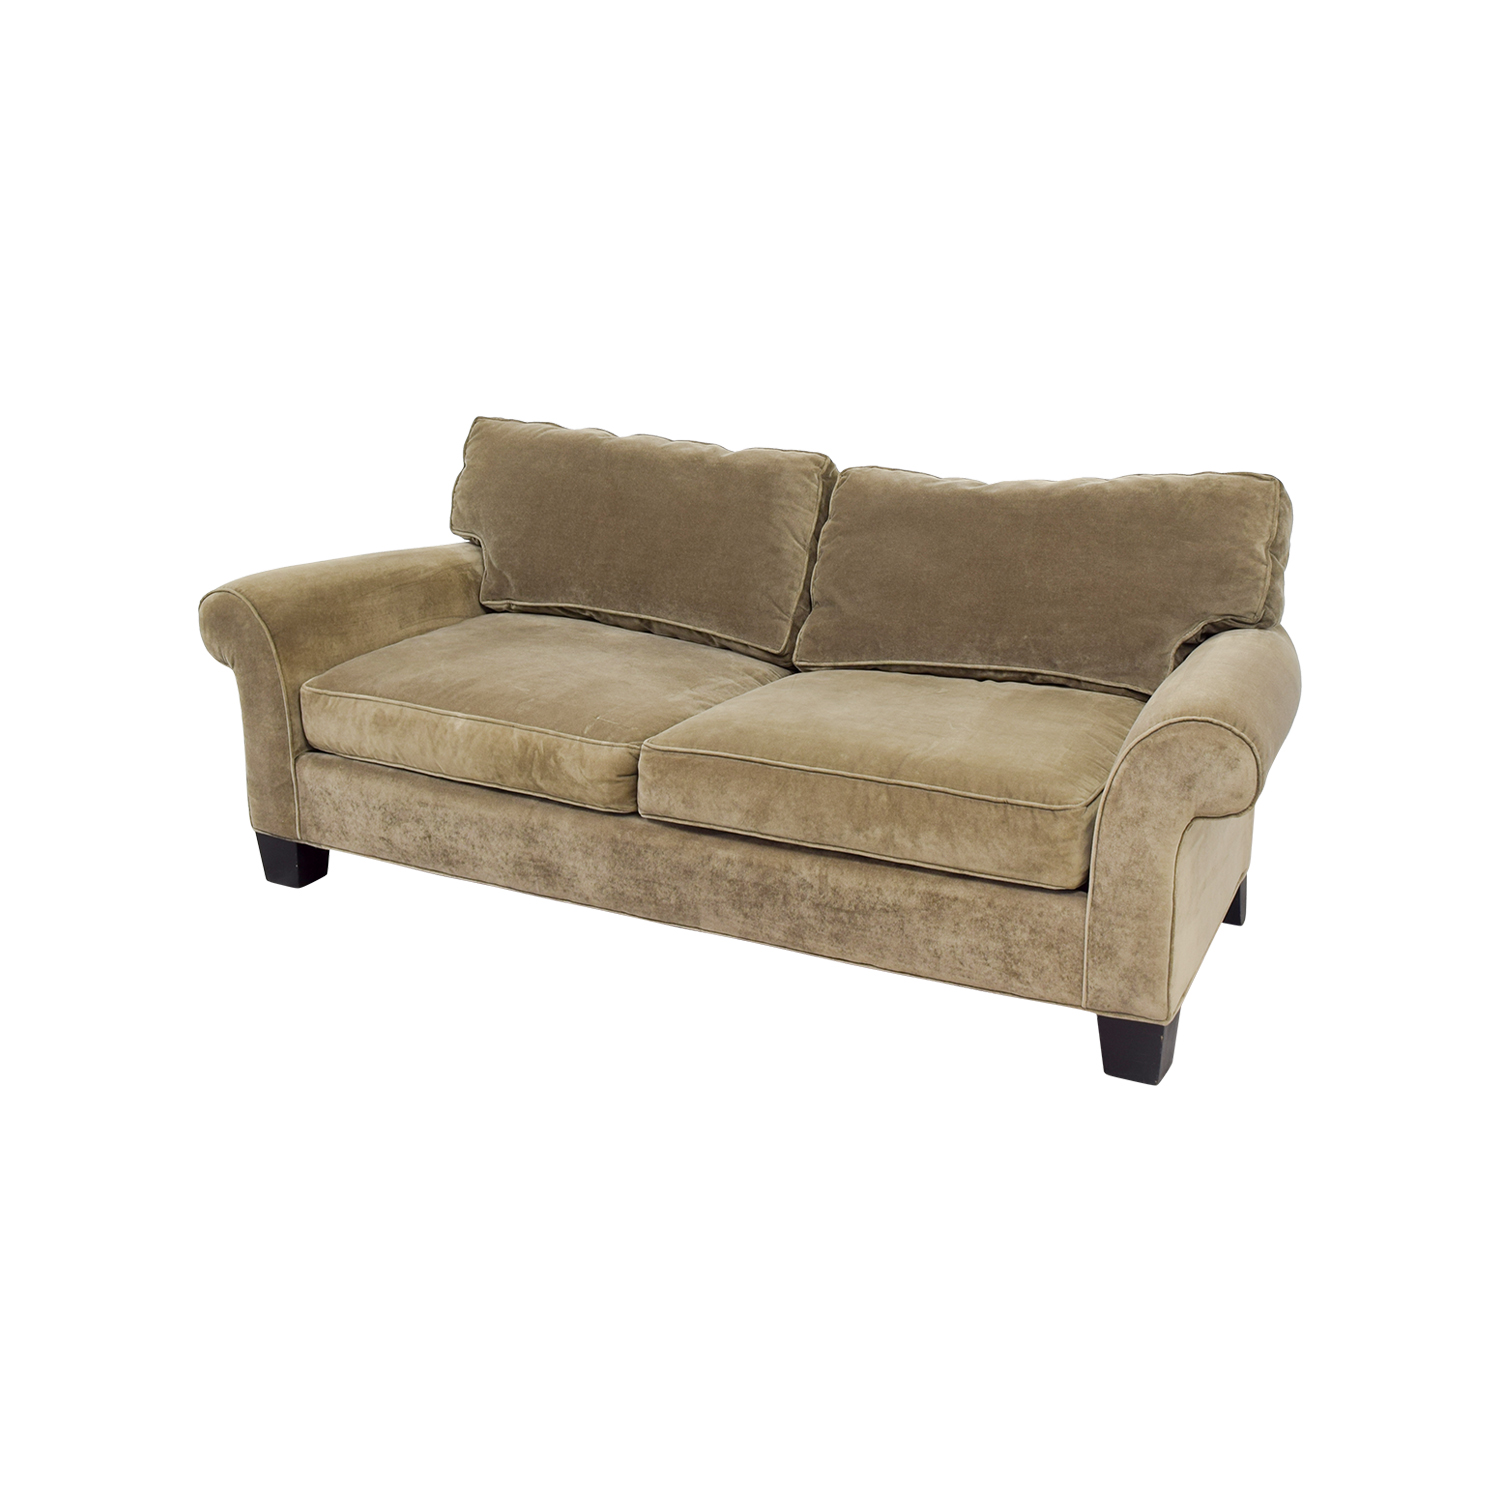 Mitchell Gold + Bob Williams Sofa by Mitchell Gold + Bob Williams. Buy used Mitchell Gold + Bob Williams Sofa in Excellent condition with 70% OFF only on Furnishare. Shop used Mitchell Gold + Bob Williams Classic Sofas on sale on Furnishare.